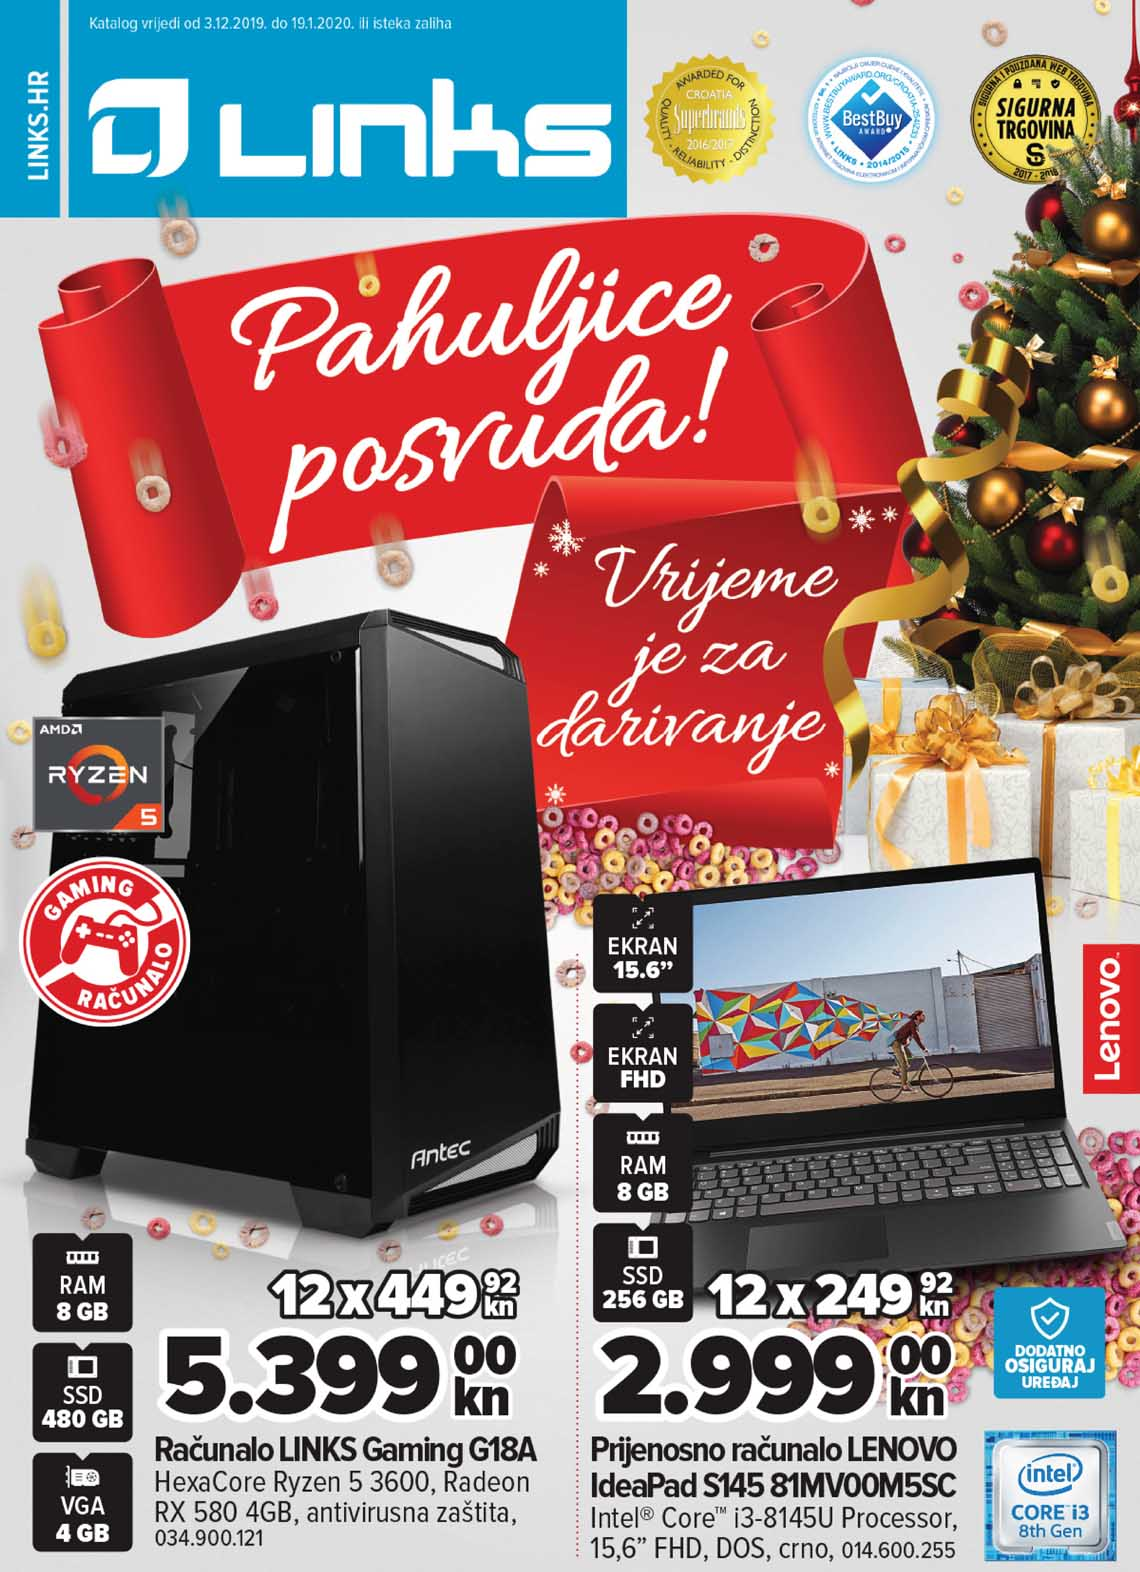 LINKS KATALOG TEHNIKE - PAHULJICE POSVUDA - Akcija do 19.01.2020.